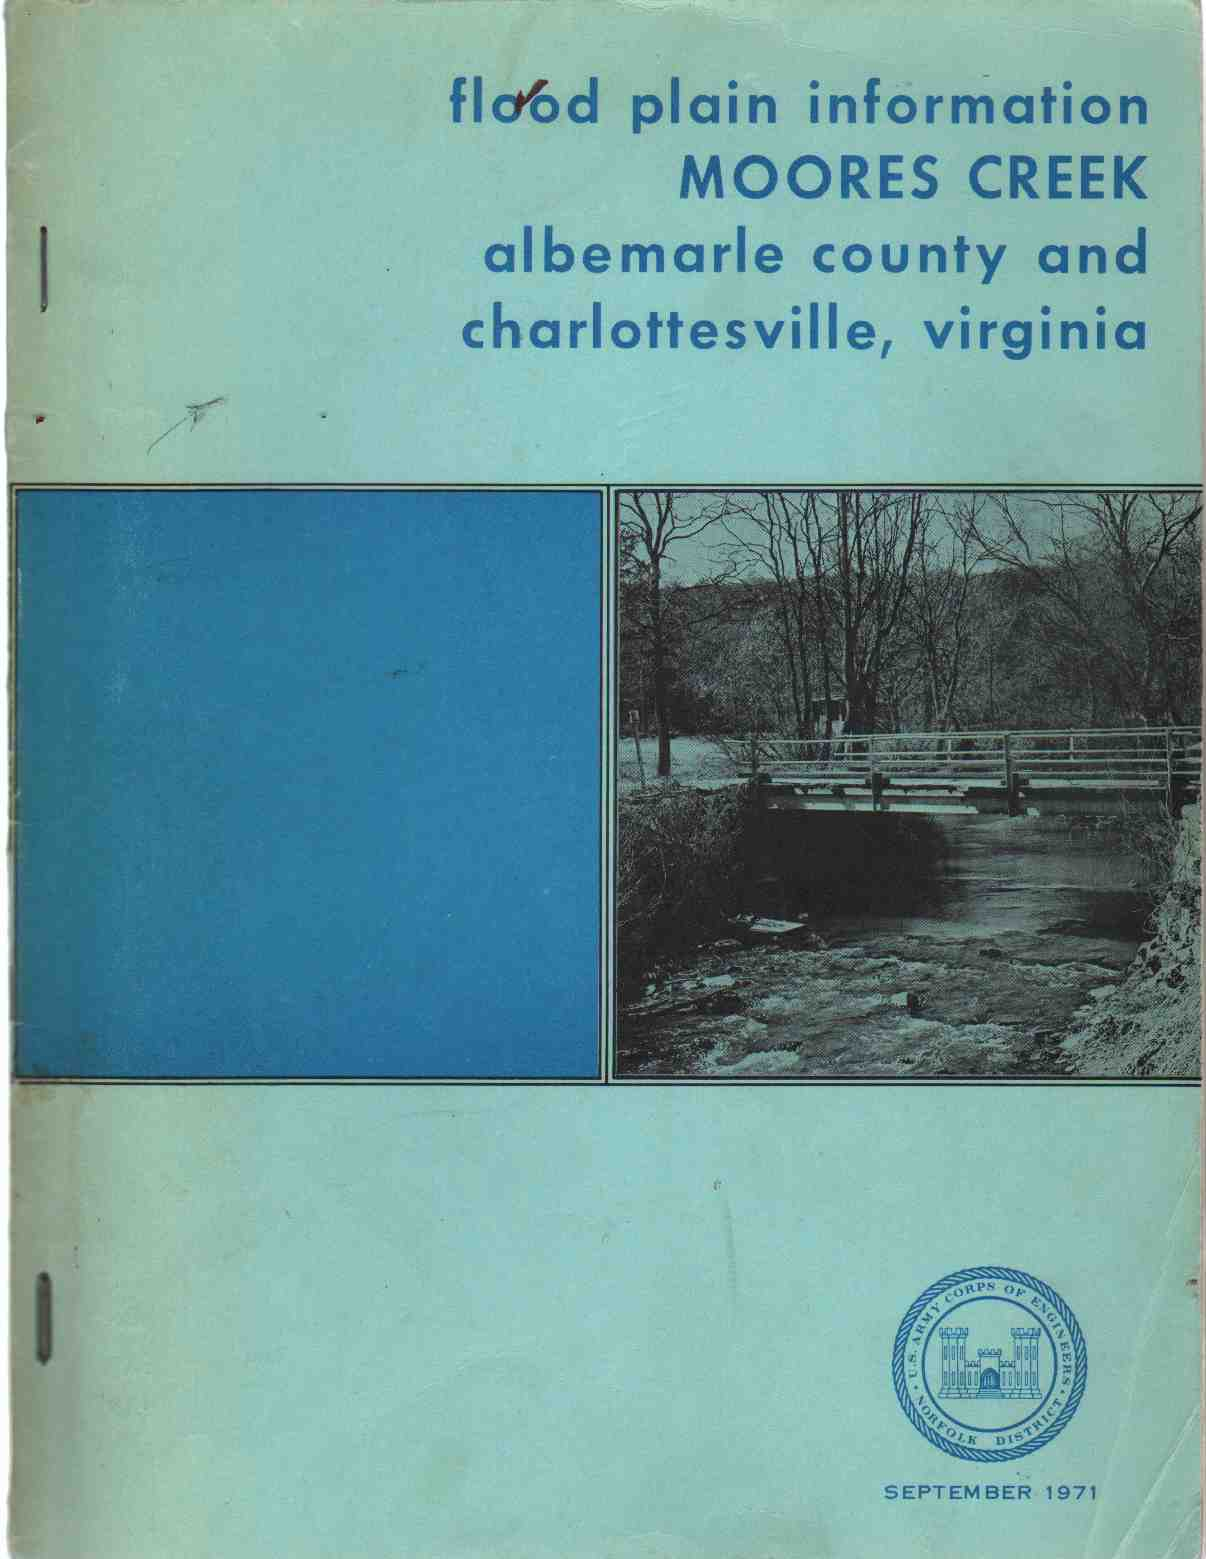 FLOOD PLAIN INFORMATION - MOORES CREEK Albemarle County and Charlottesville, Virginia, Army Corps Of Engineers